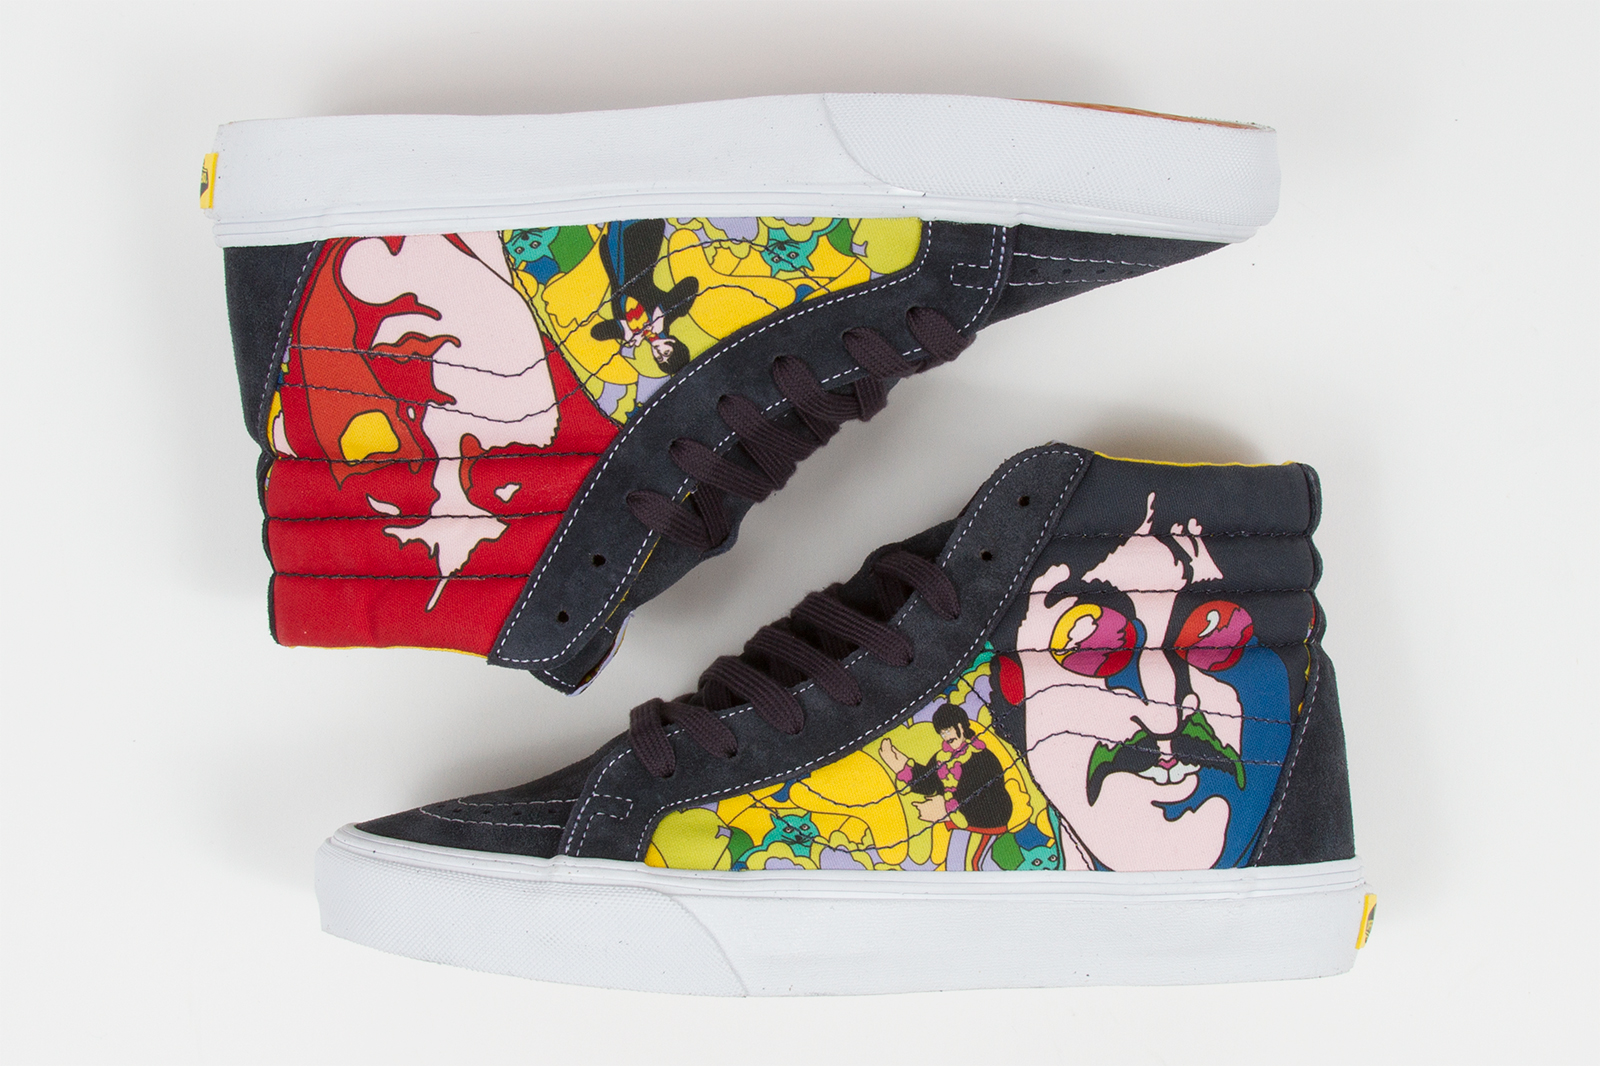 c0ba2f76425 A surprise sell out sneaker in our shop was definitely the Vans x Beatles  Sk8-Hi and Era. It s definitely a dope sneaker ...